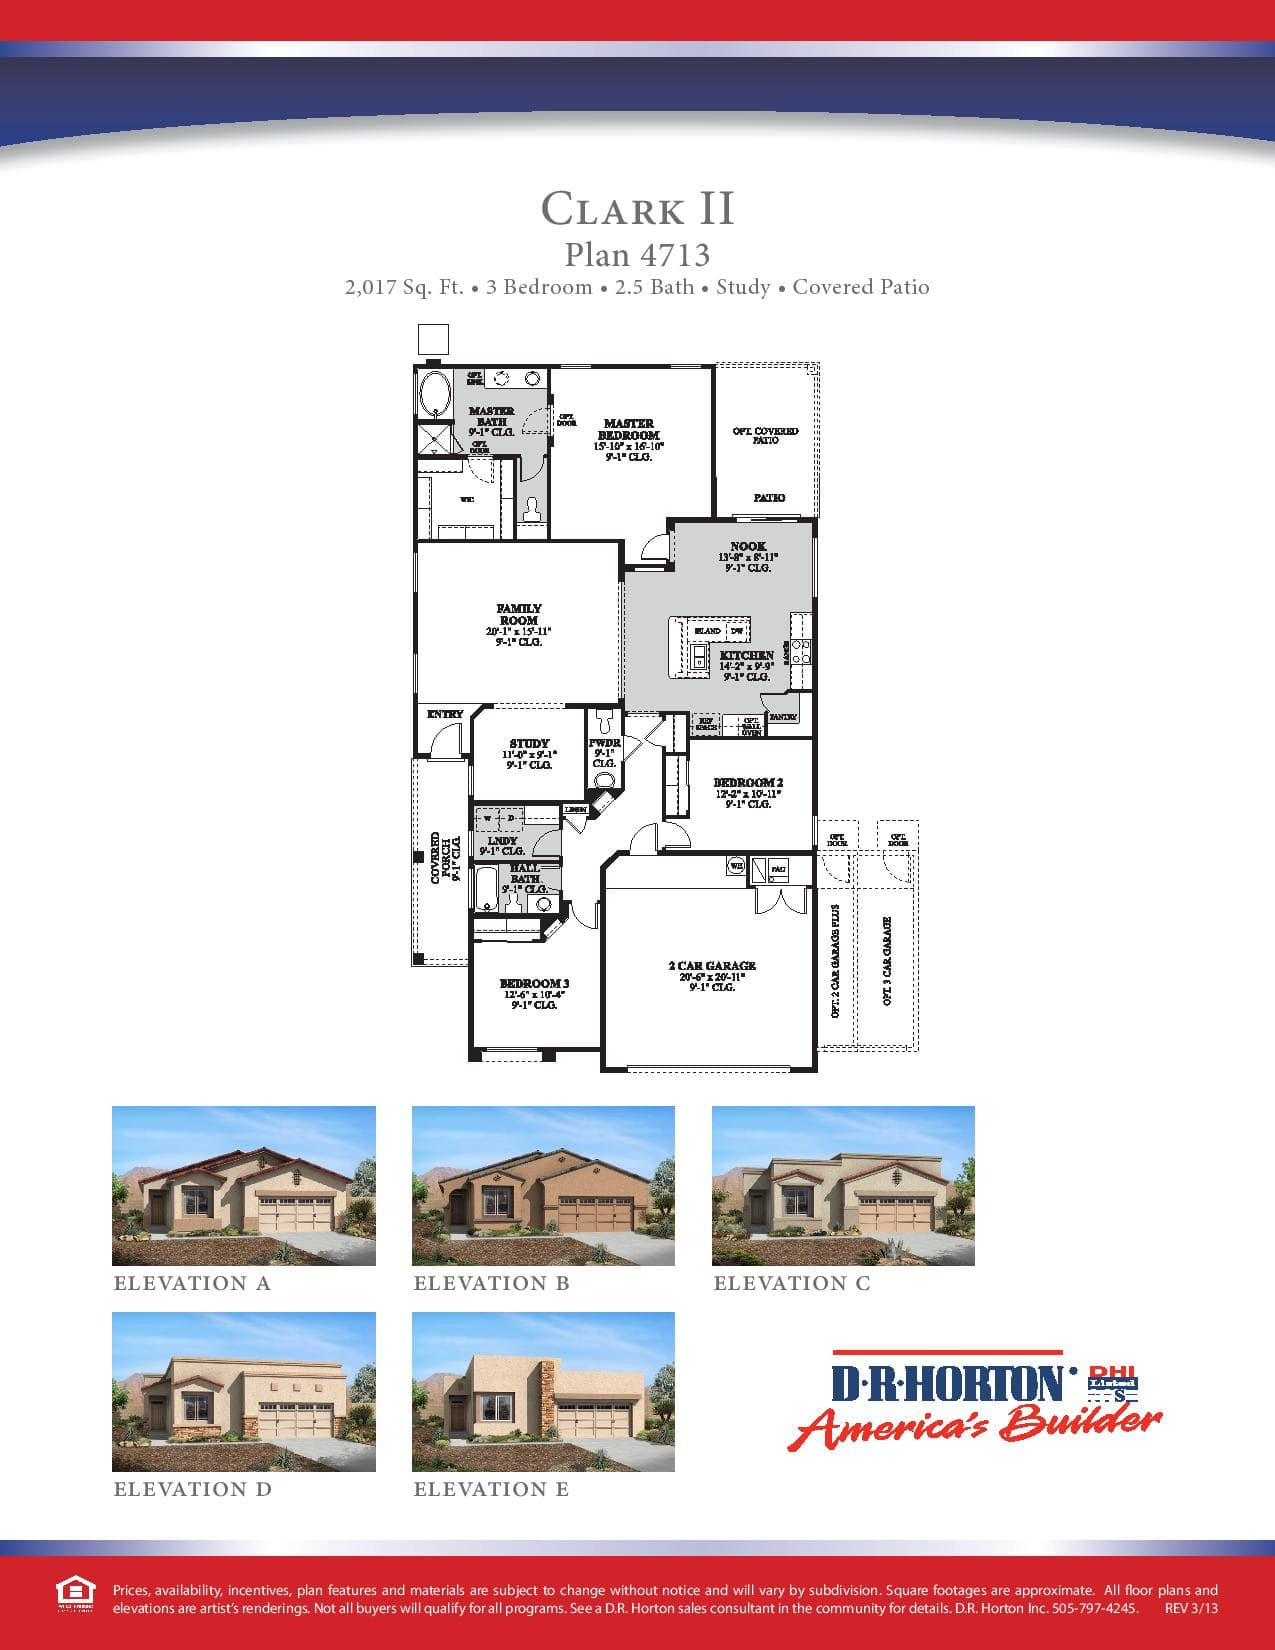 Home Builder Plans besides D R Horton Homes Floor Plans Coventry besides Floor Plans Realtor Rosemary besides Non Bilateral Abraham Lincoln also RssFeed. on d r horton house plans nc